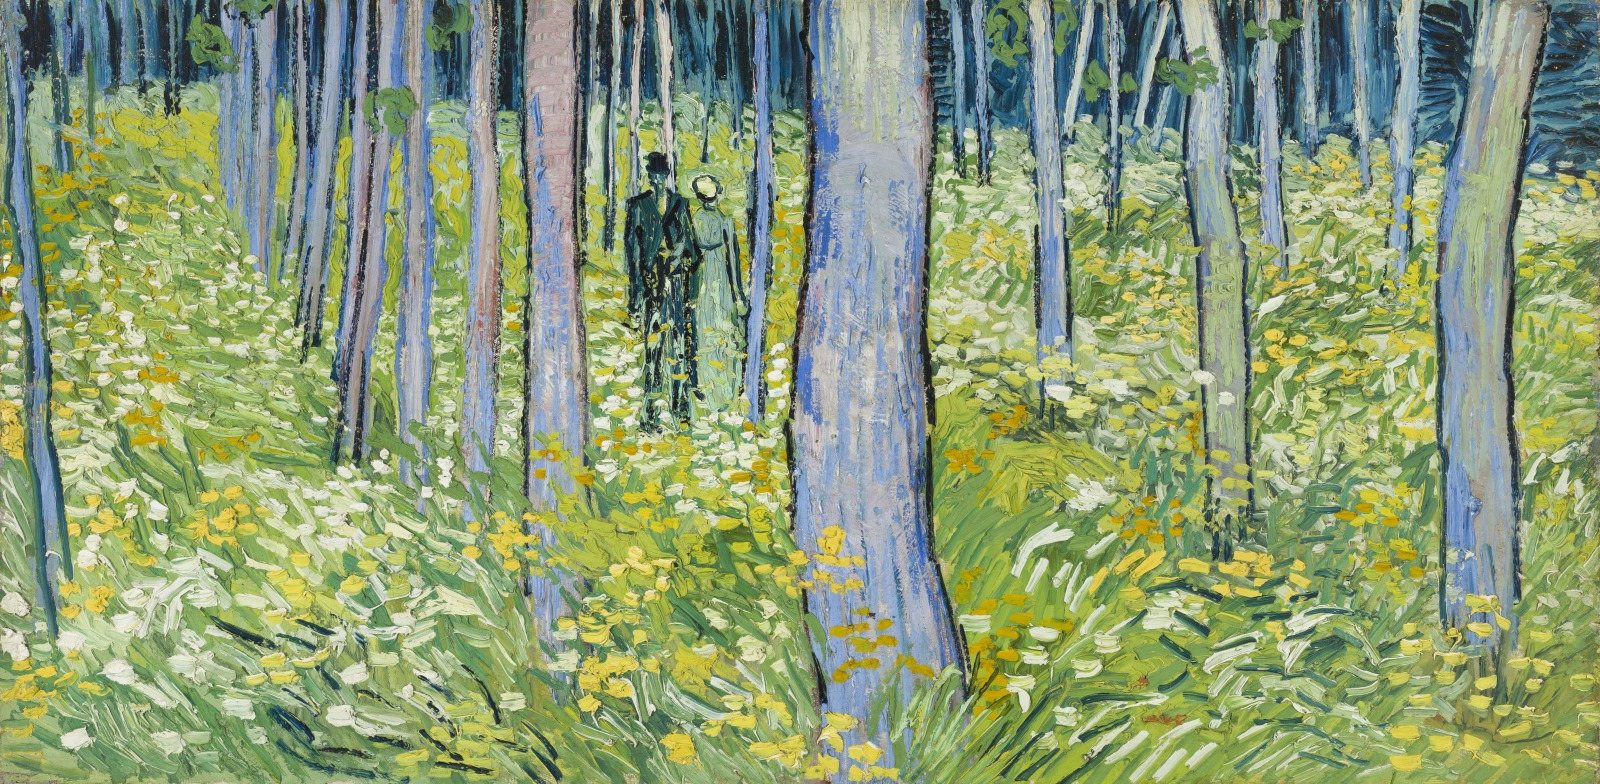 Undergrowth with Two Figures